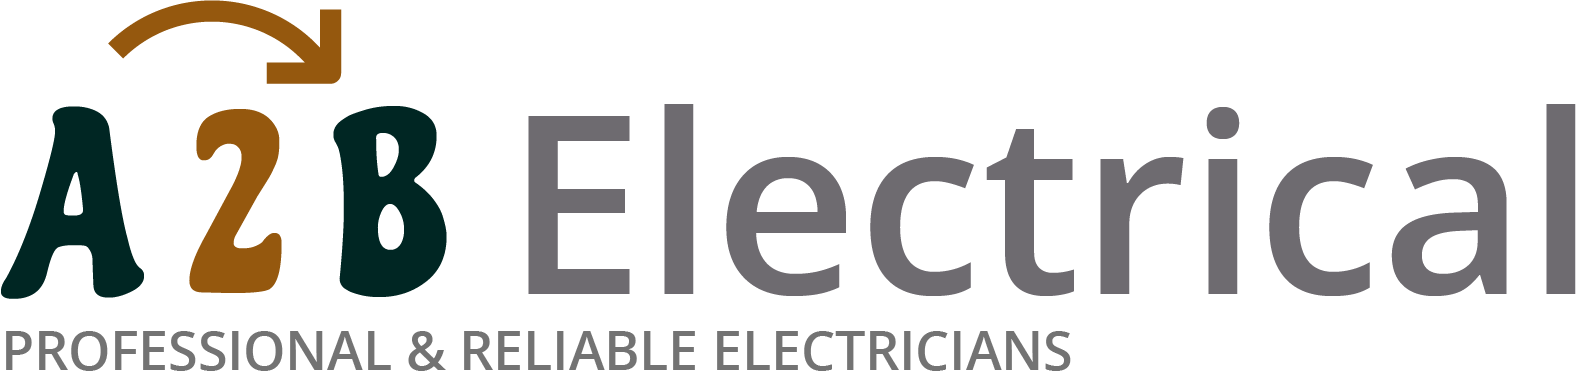 If you have electrical wiring problems in Newbury Park, we can provide an electrician to have a look for you.